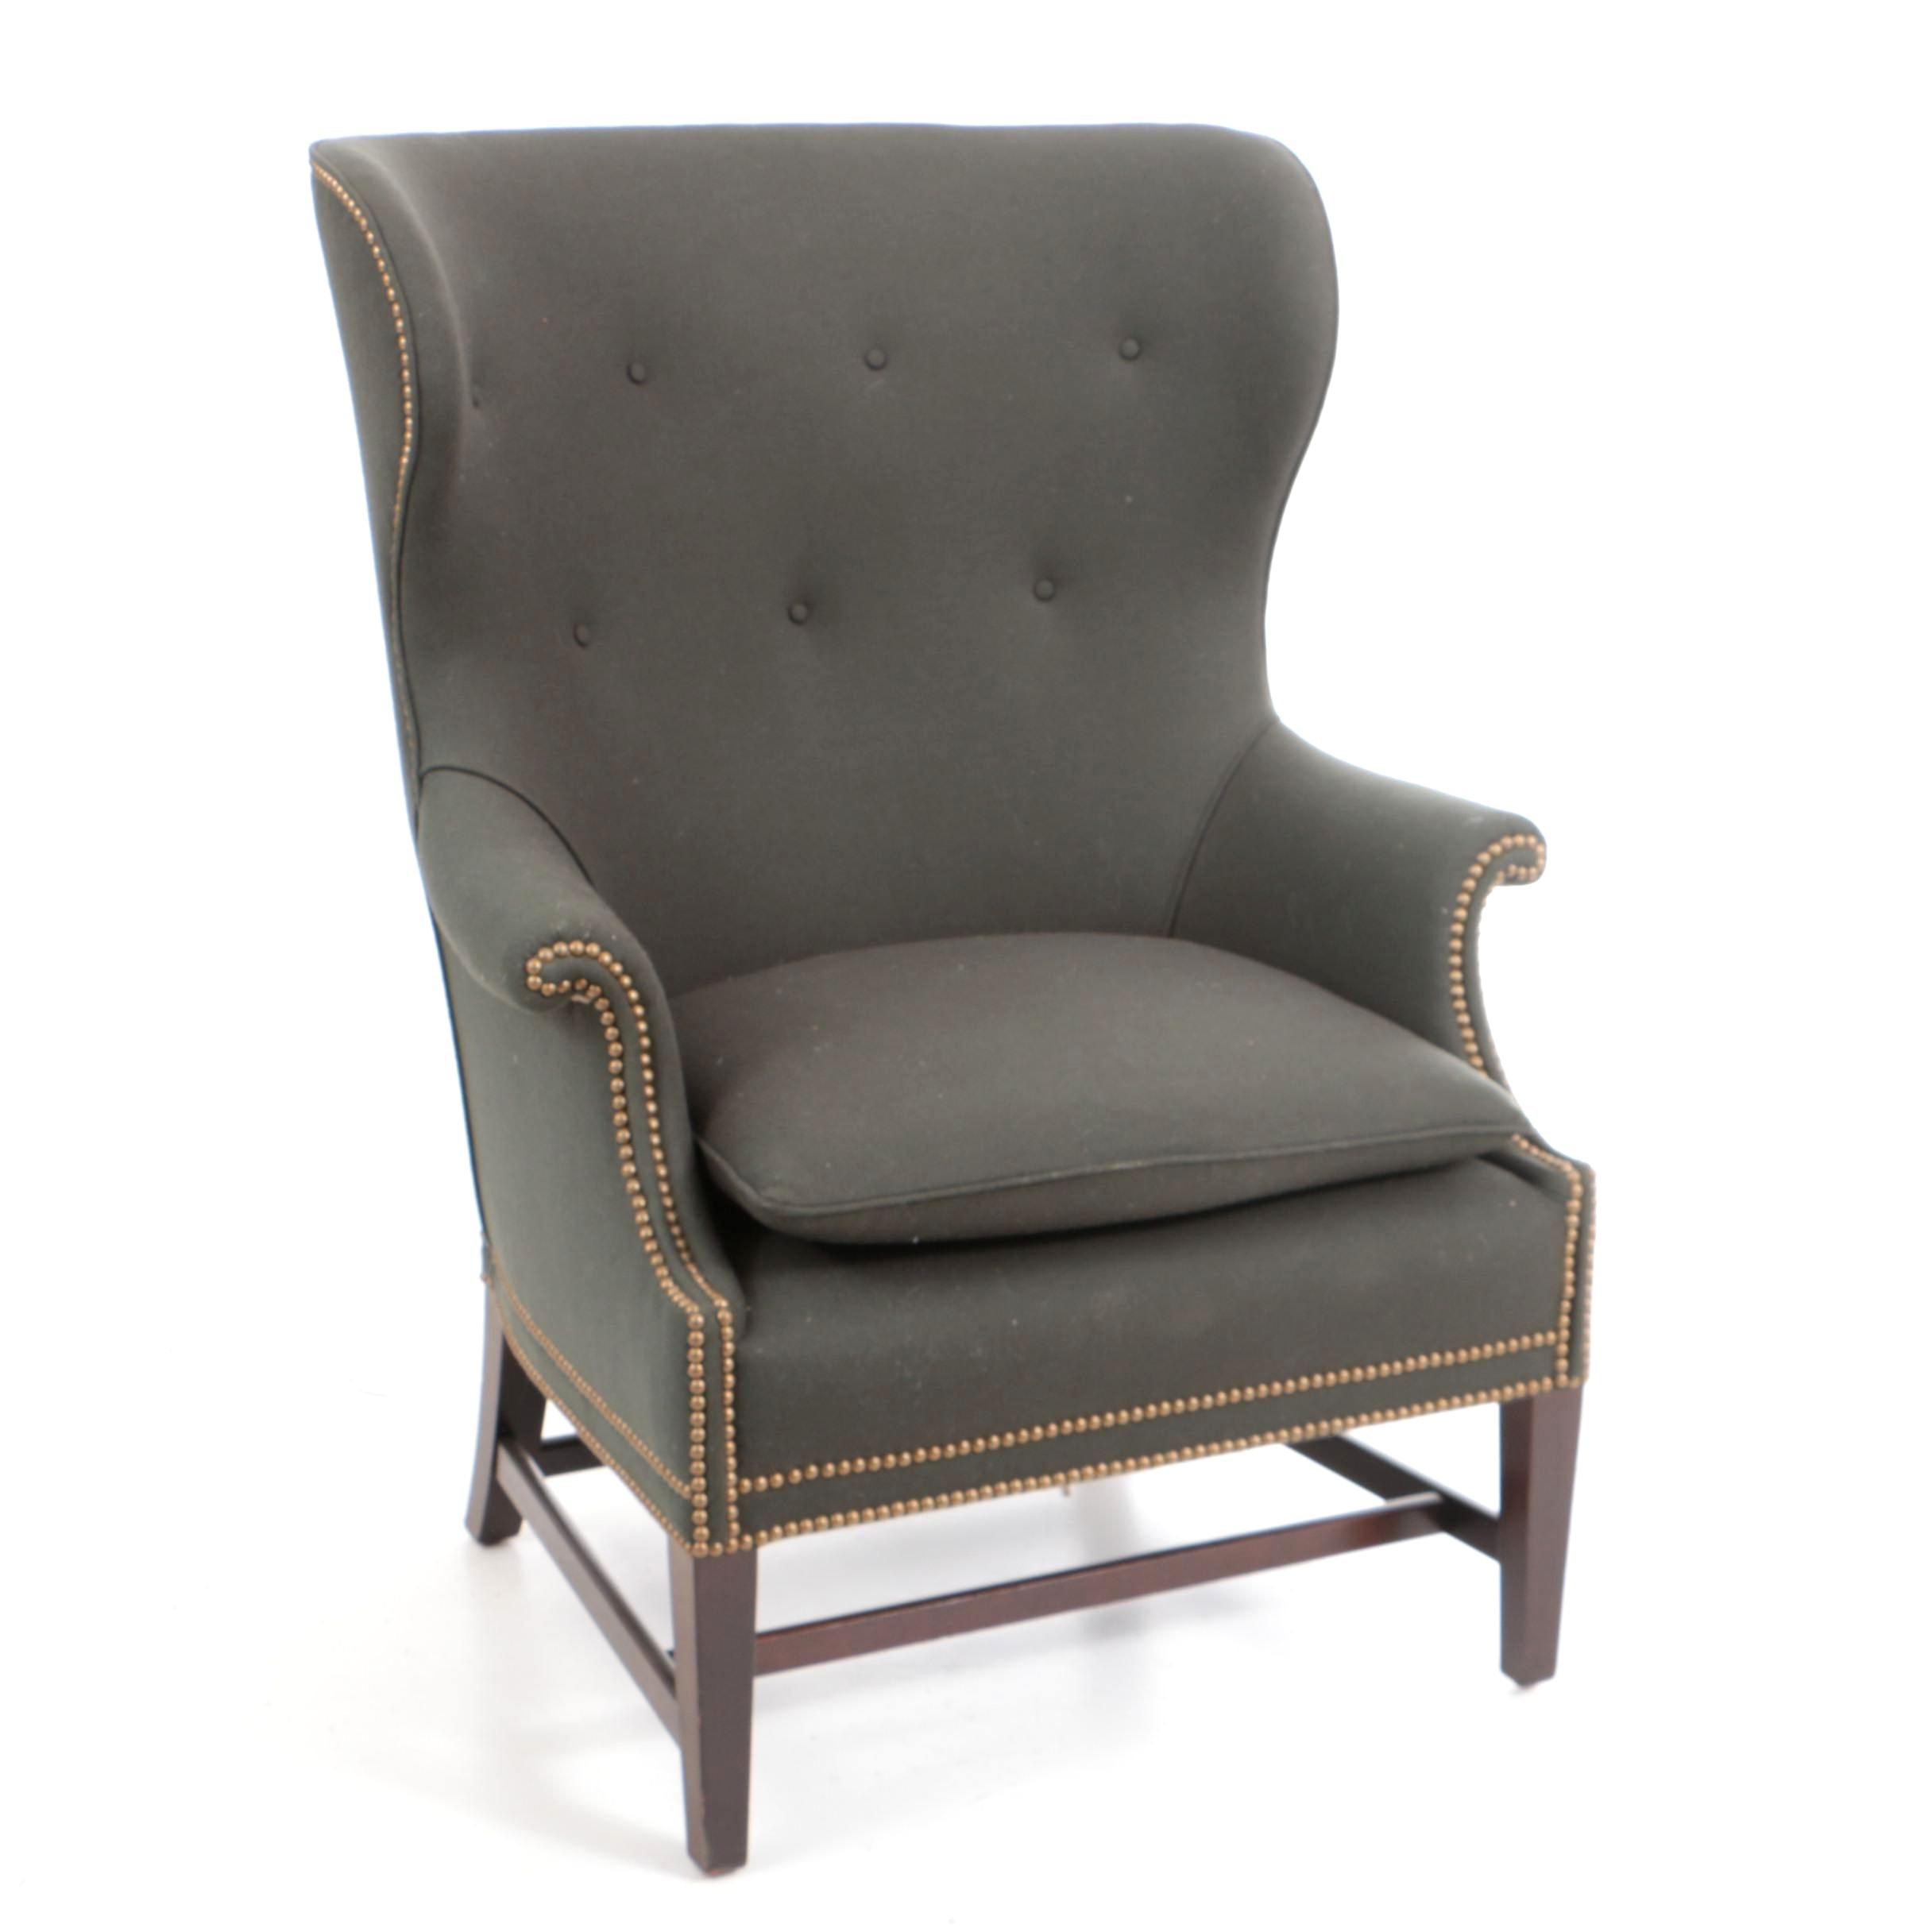 """The James"" Bespoke Wing Chair by Victoria Hagan"